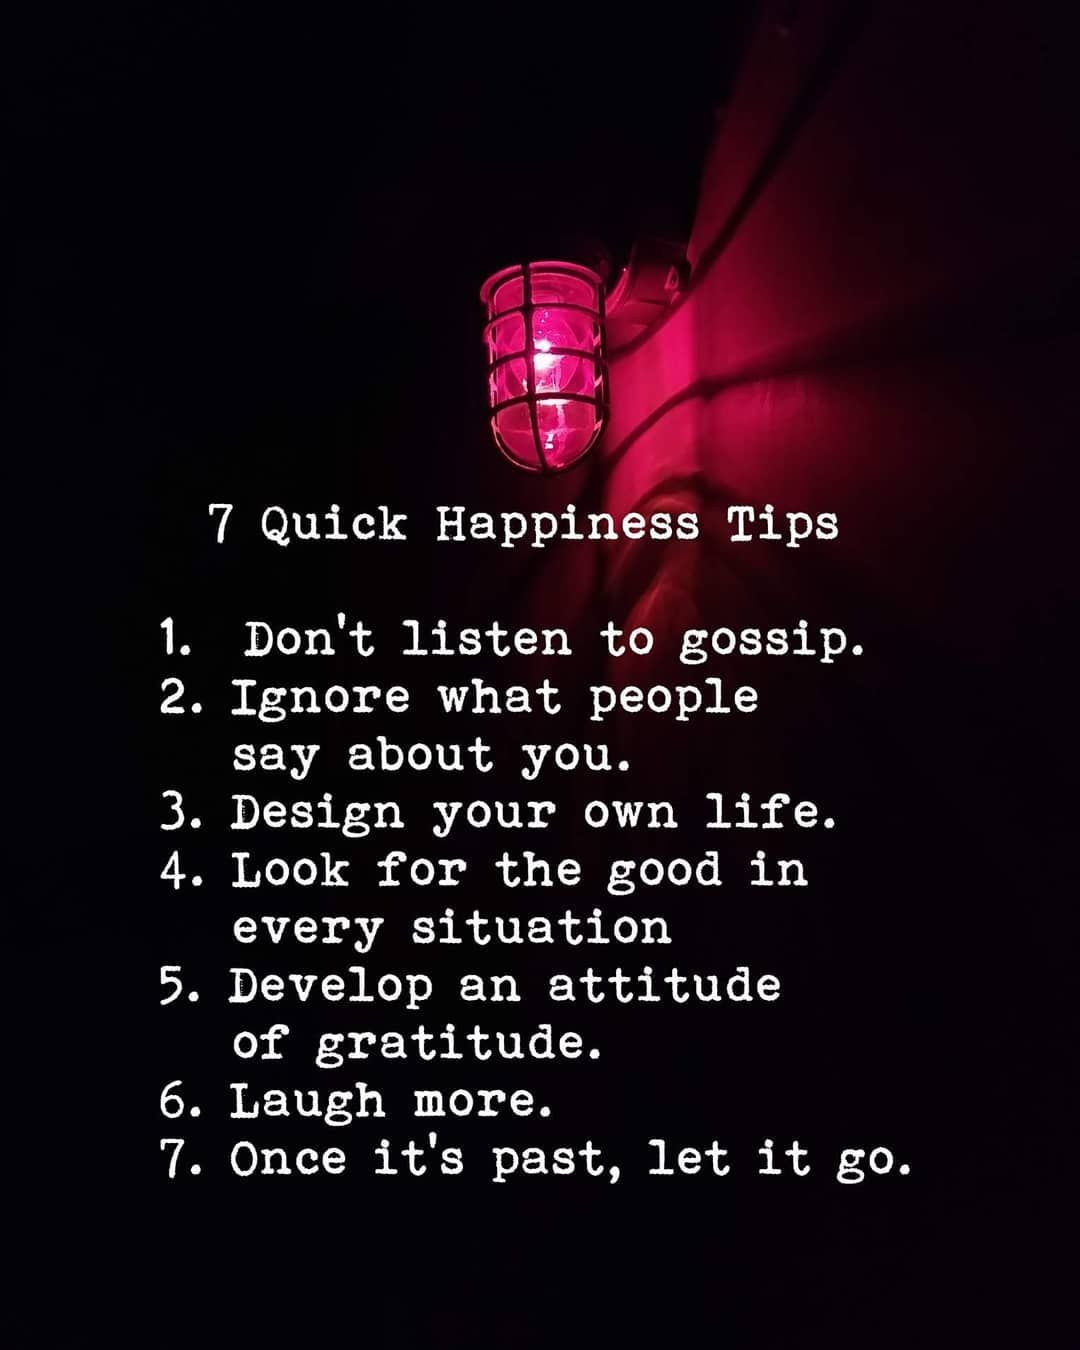 7 Quick Happiness Tips Pictures, Photos, and Images for Facebook, Tumblr,  Pinterest, and Twitter